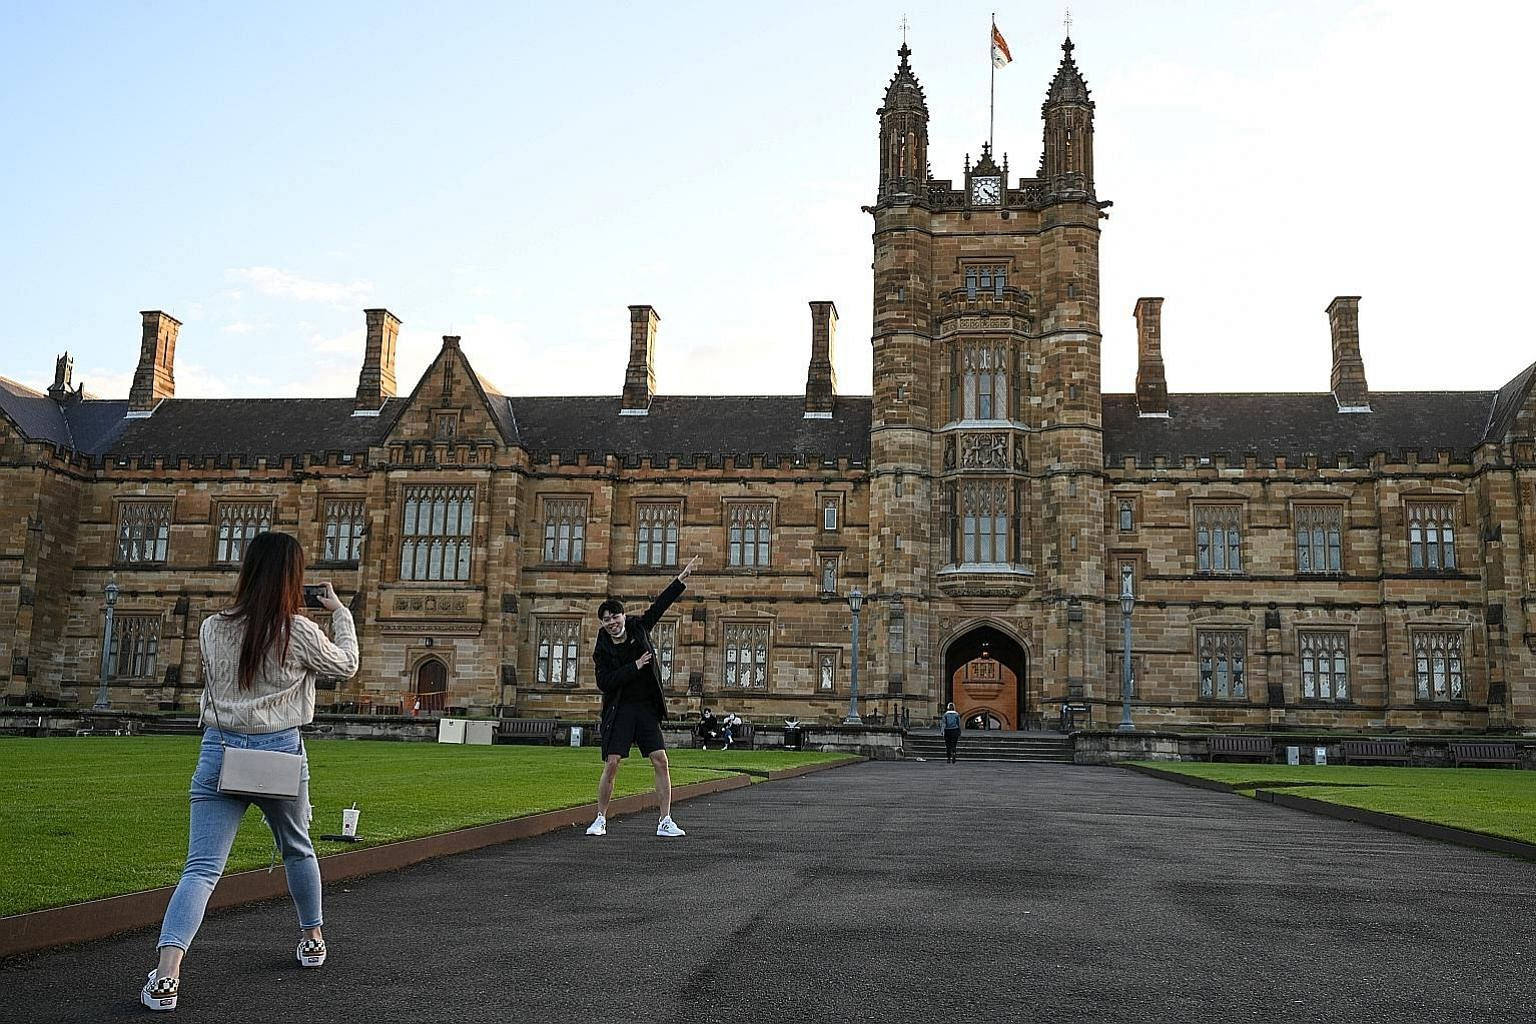 International students from China taking photos on campus at the University of Sydney in Australia. Some 19,000 Singapore students are enrolled in universities in the United States, Britain and Australia. Last month, Education Minister Lawrence Wong